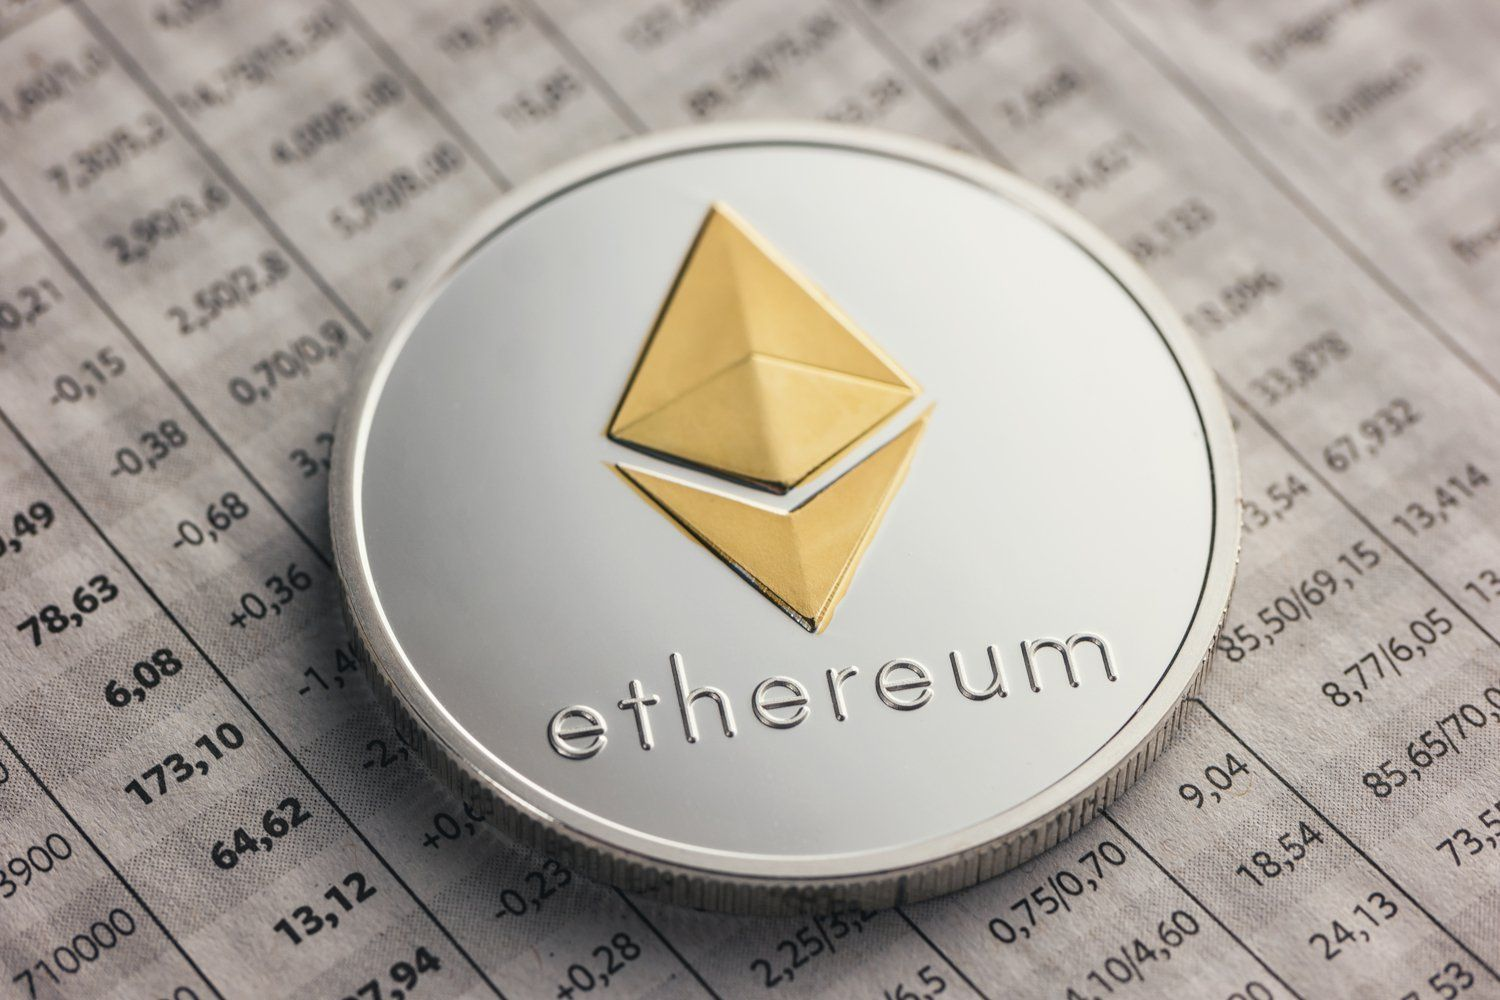 The Ethereum Foundation Just Awarded Nearly 3 Million In Grants